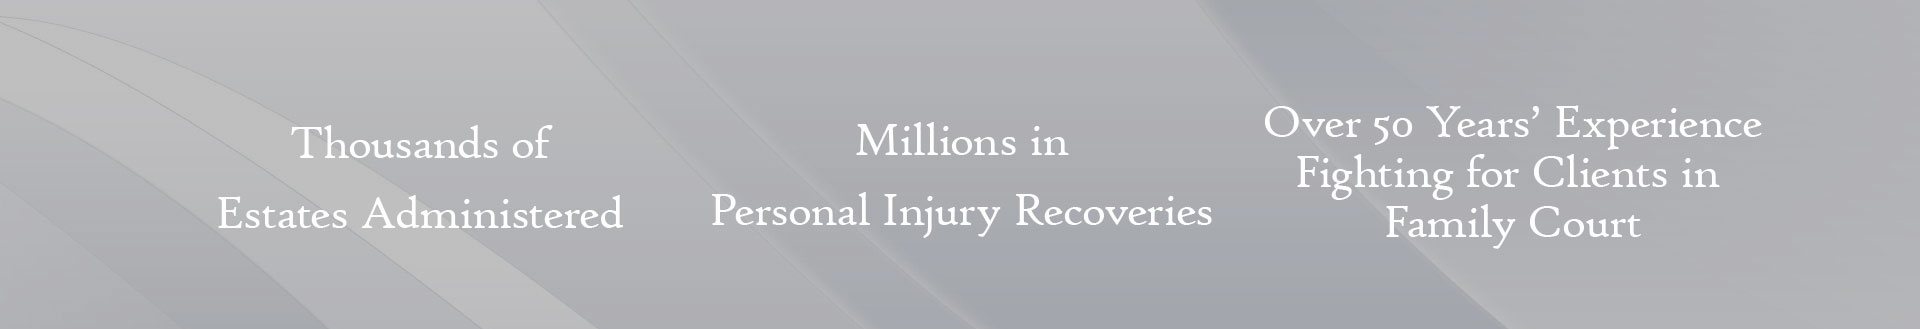 eckell-sparks-law-millions-in-personal-injury-recoveries